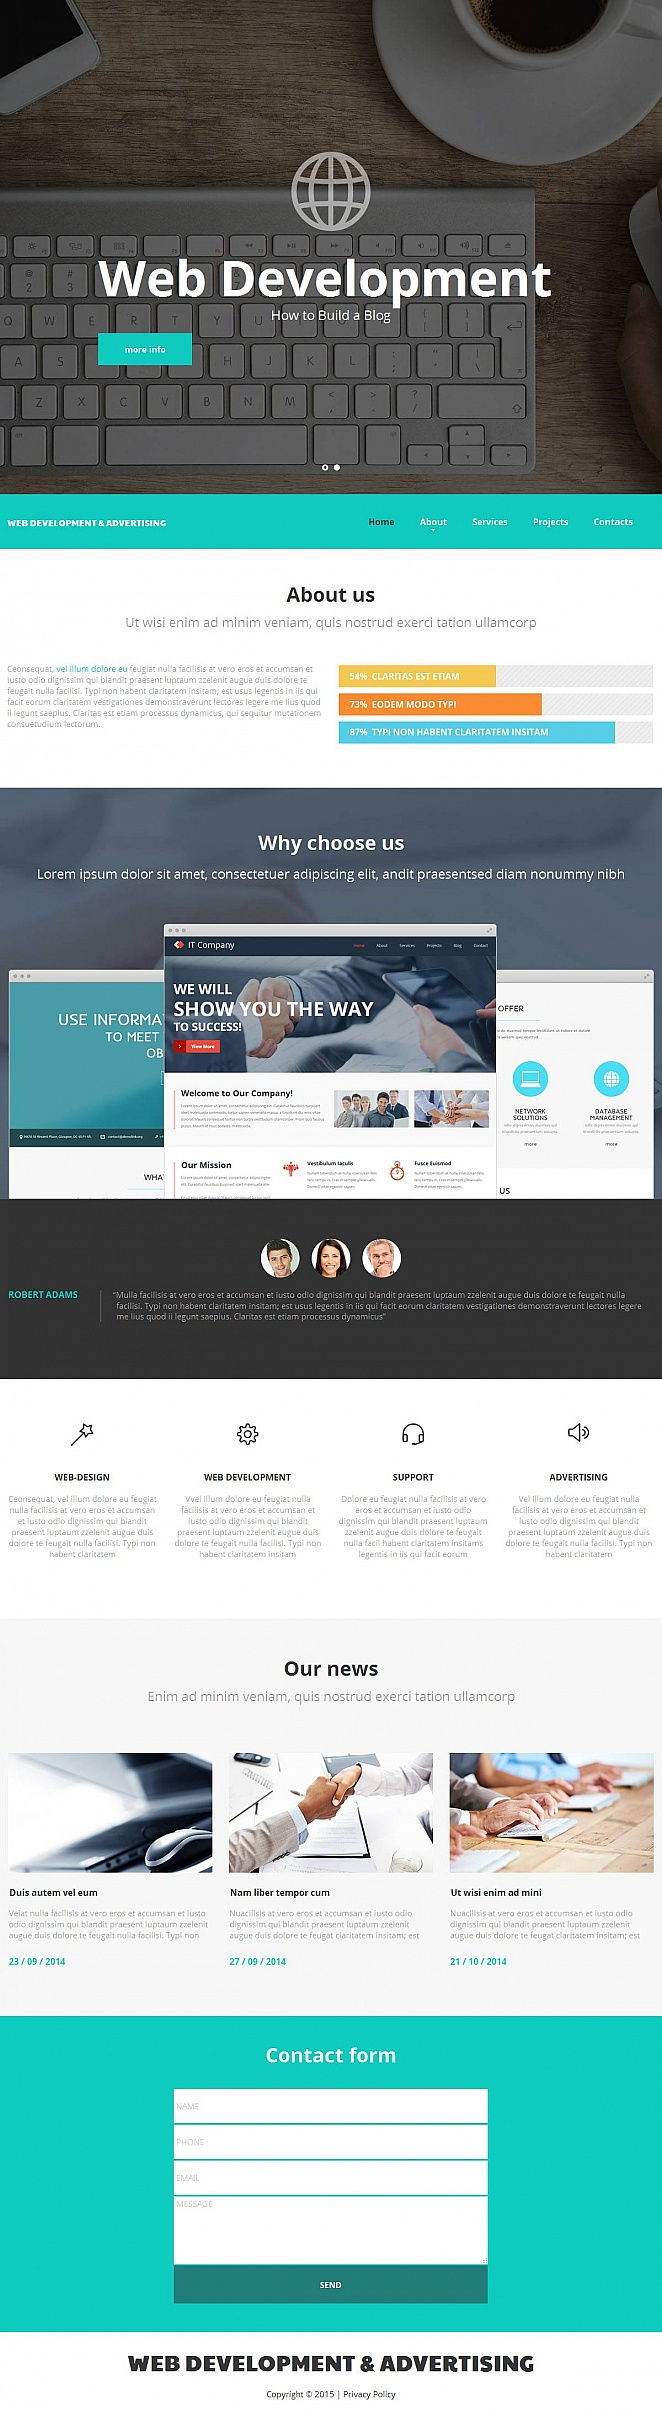 Web Development Company Website Template - image